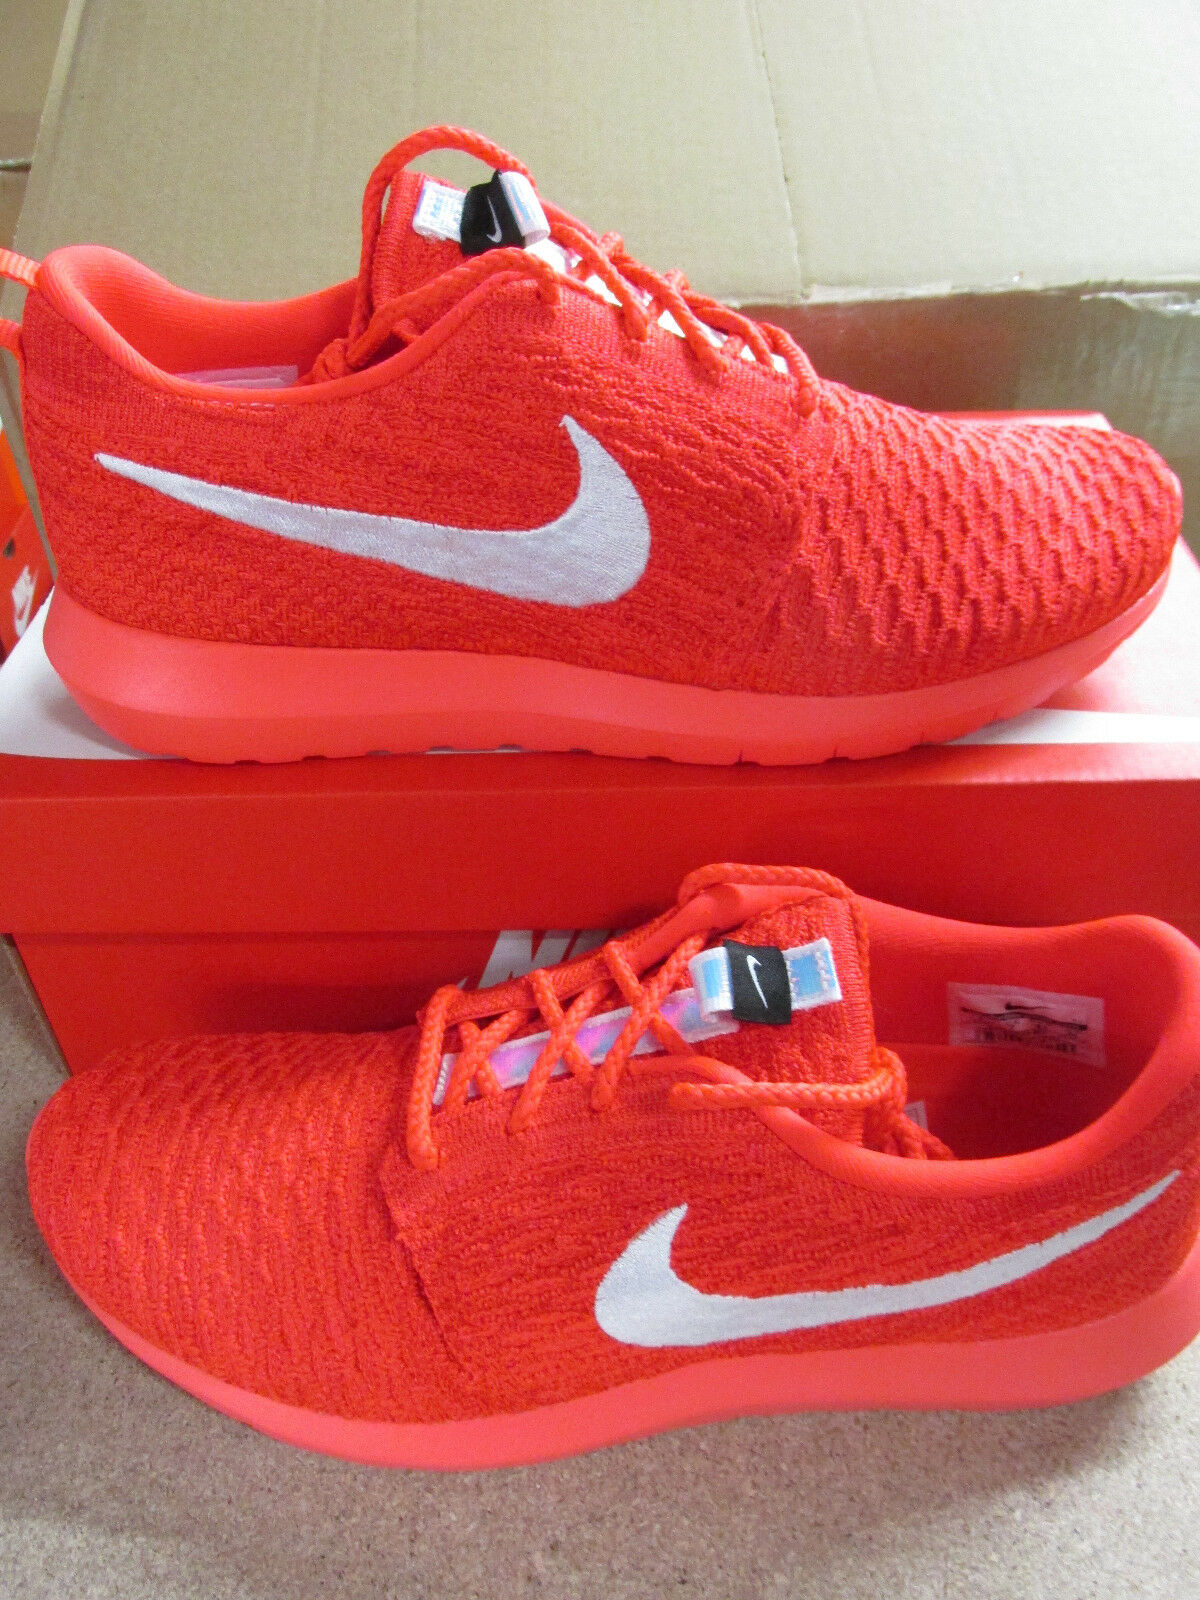 nike flyknit rosherun homme  running trainers 677243 604 sneakers  chaussures